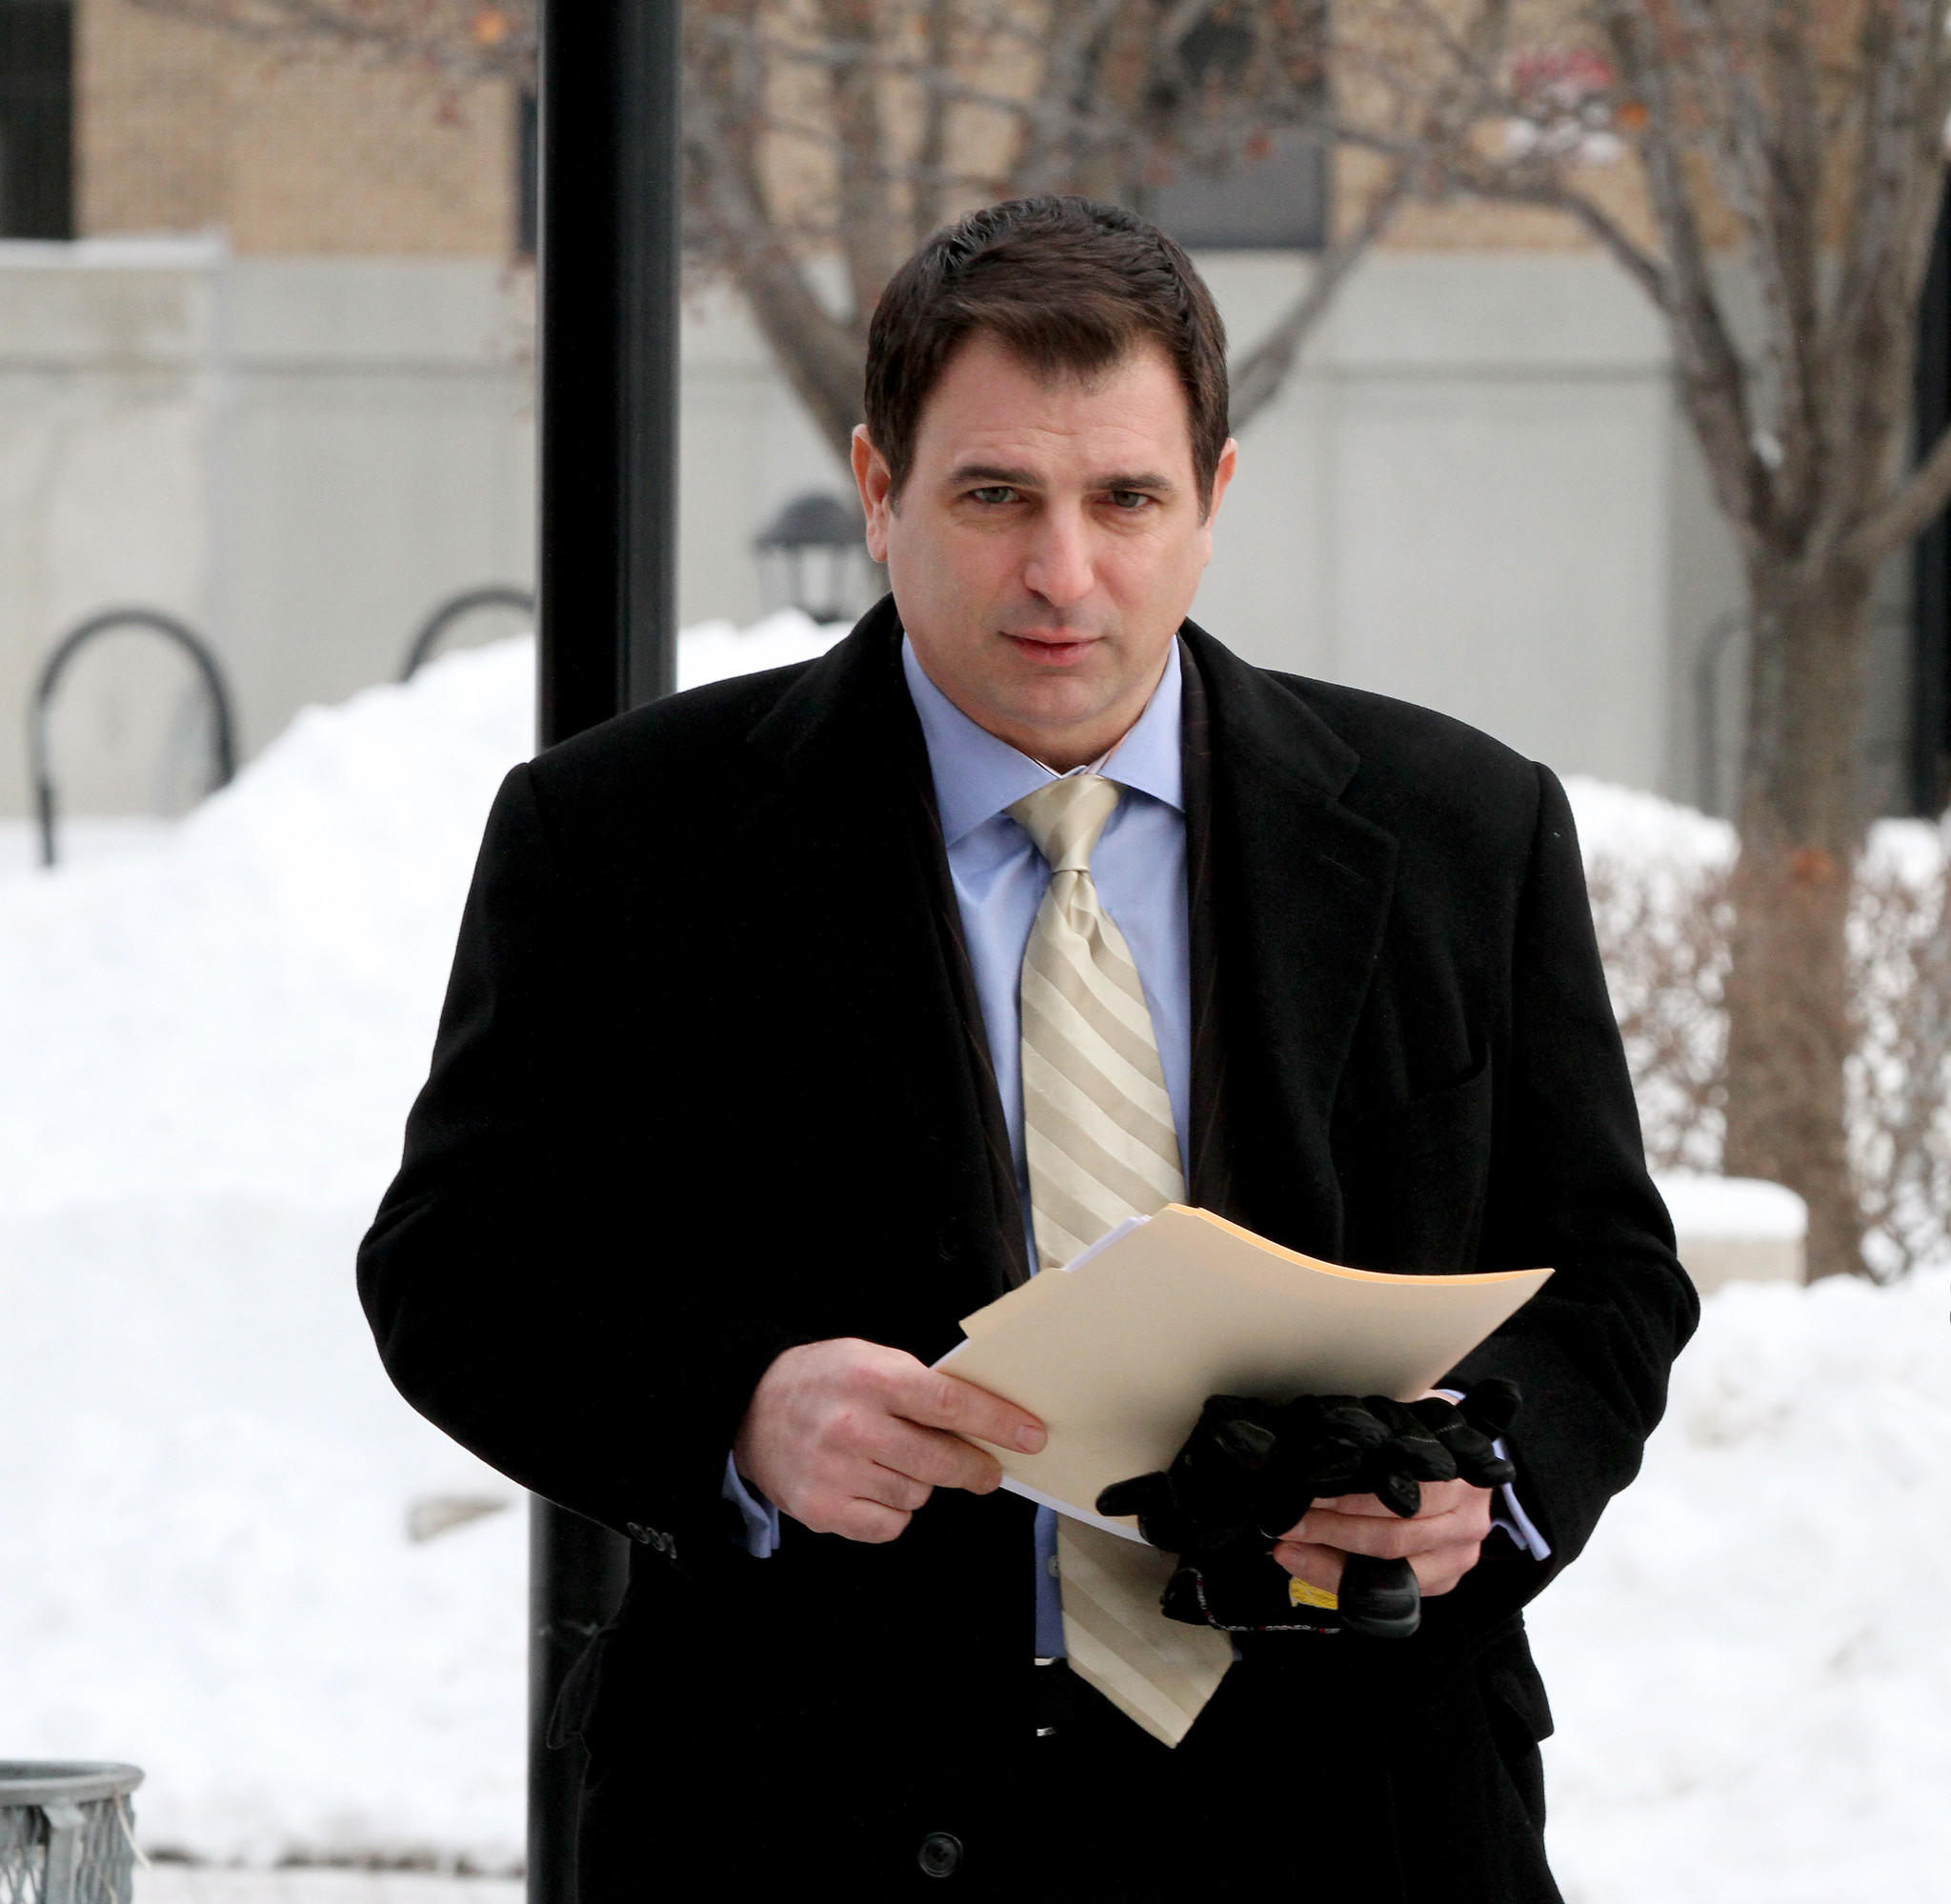 WBBM-TV reporter Dave Savini enters the DuPage County courthouse.